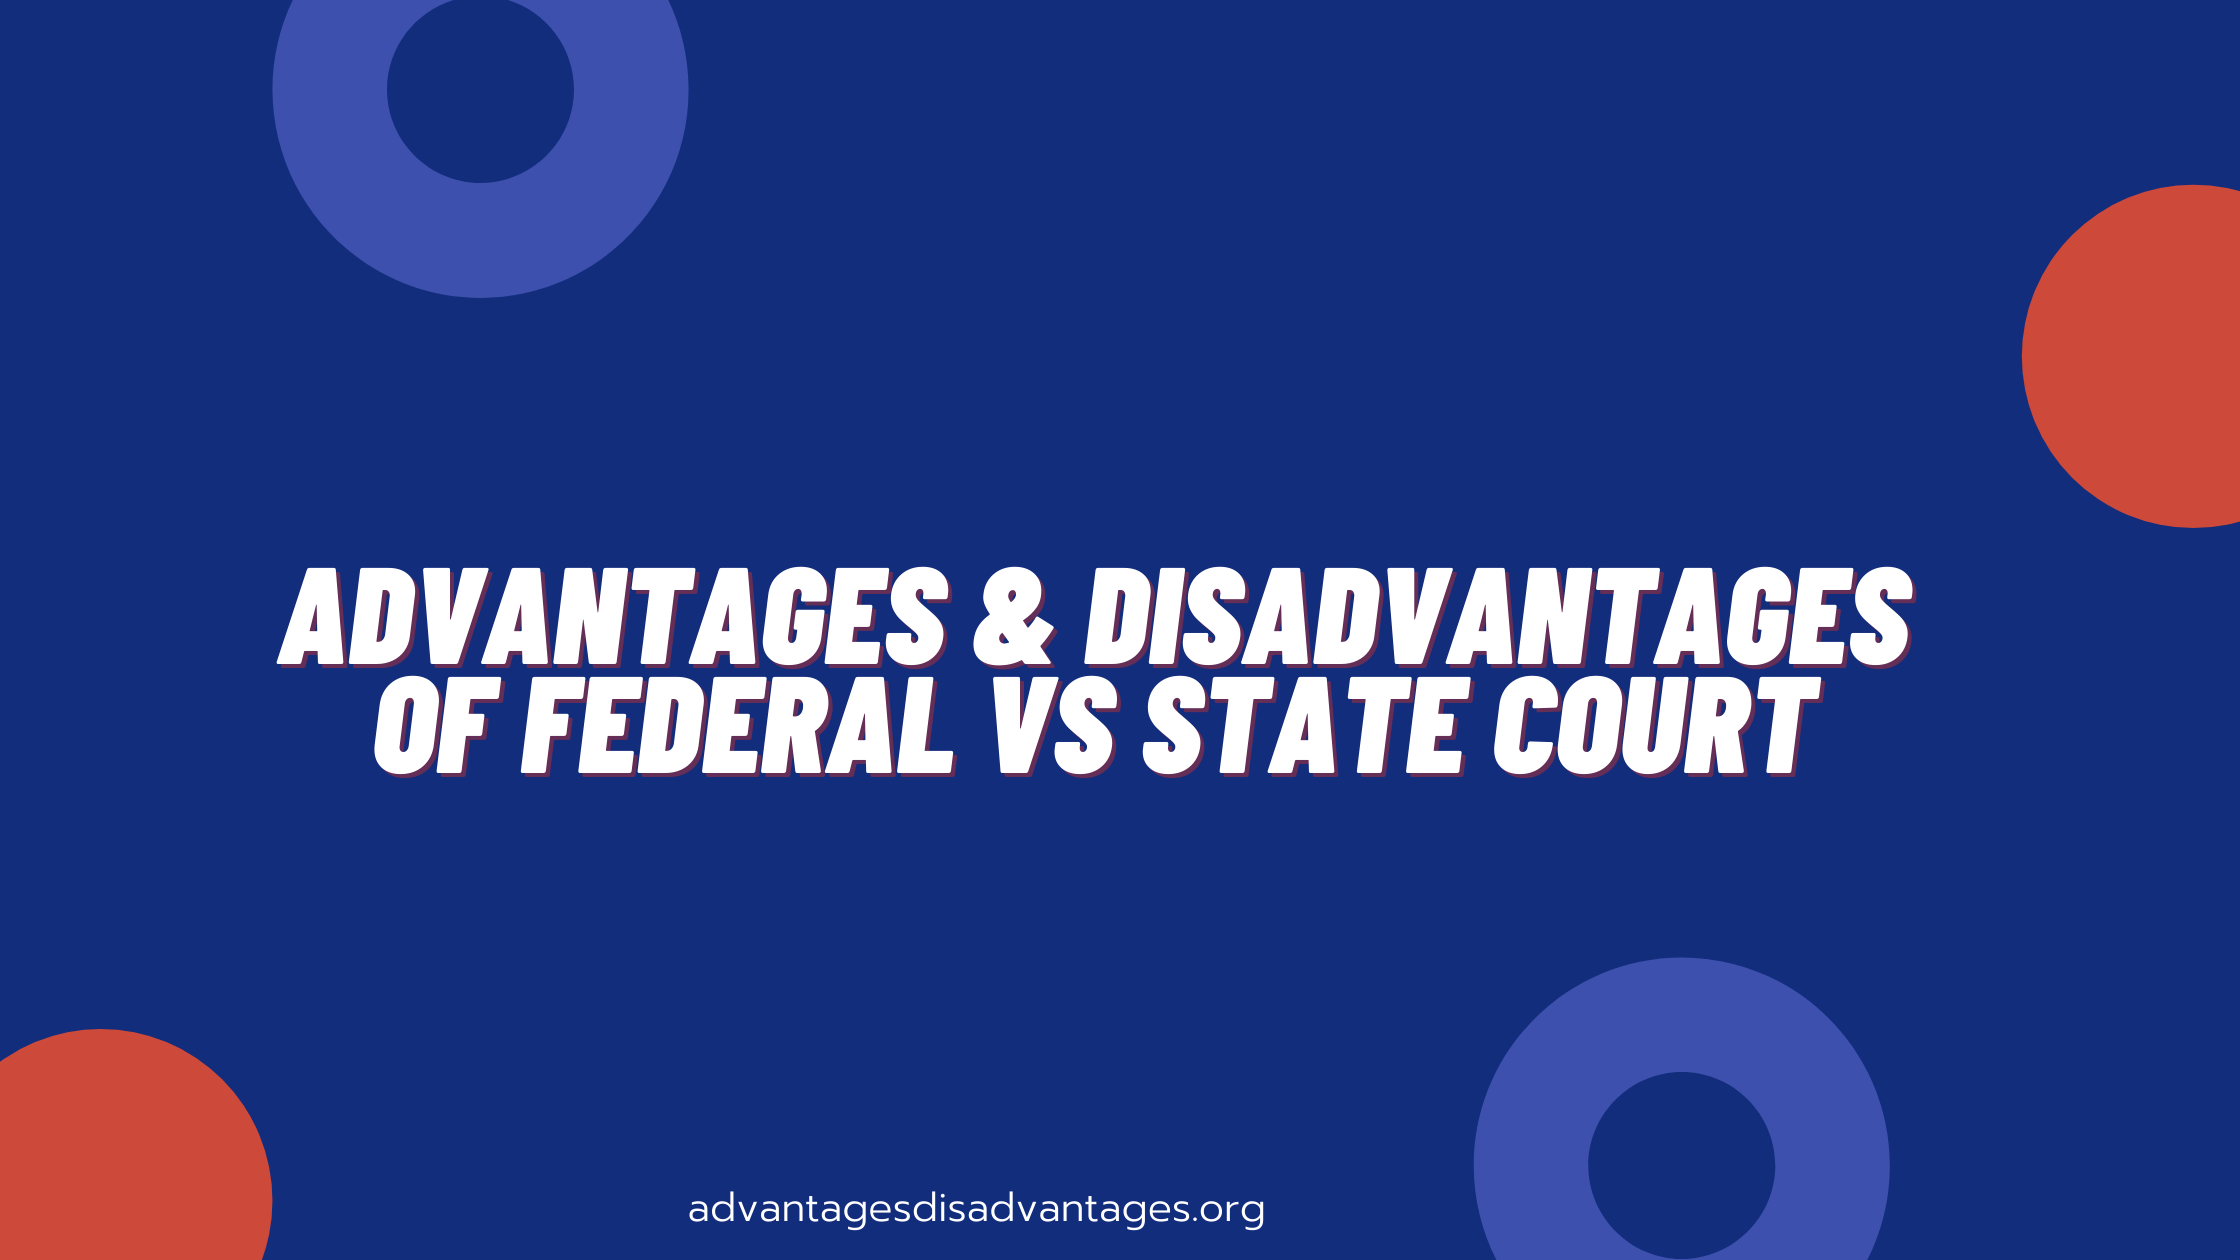 Federal vs State Court